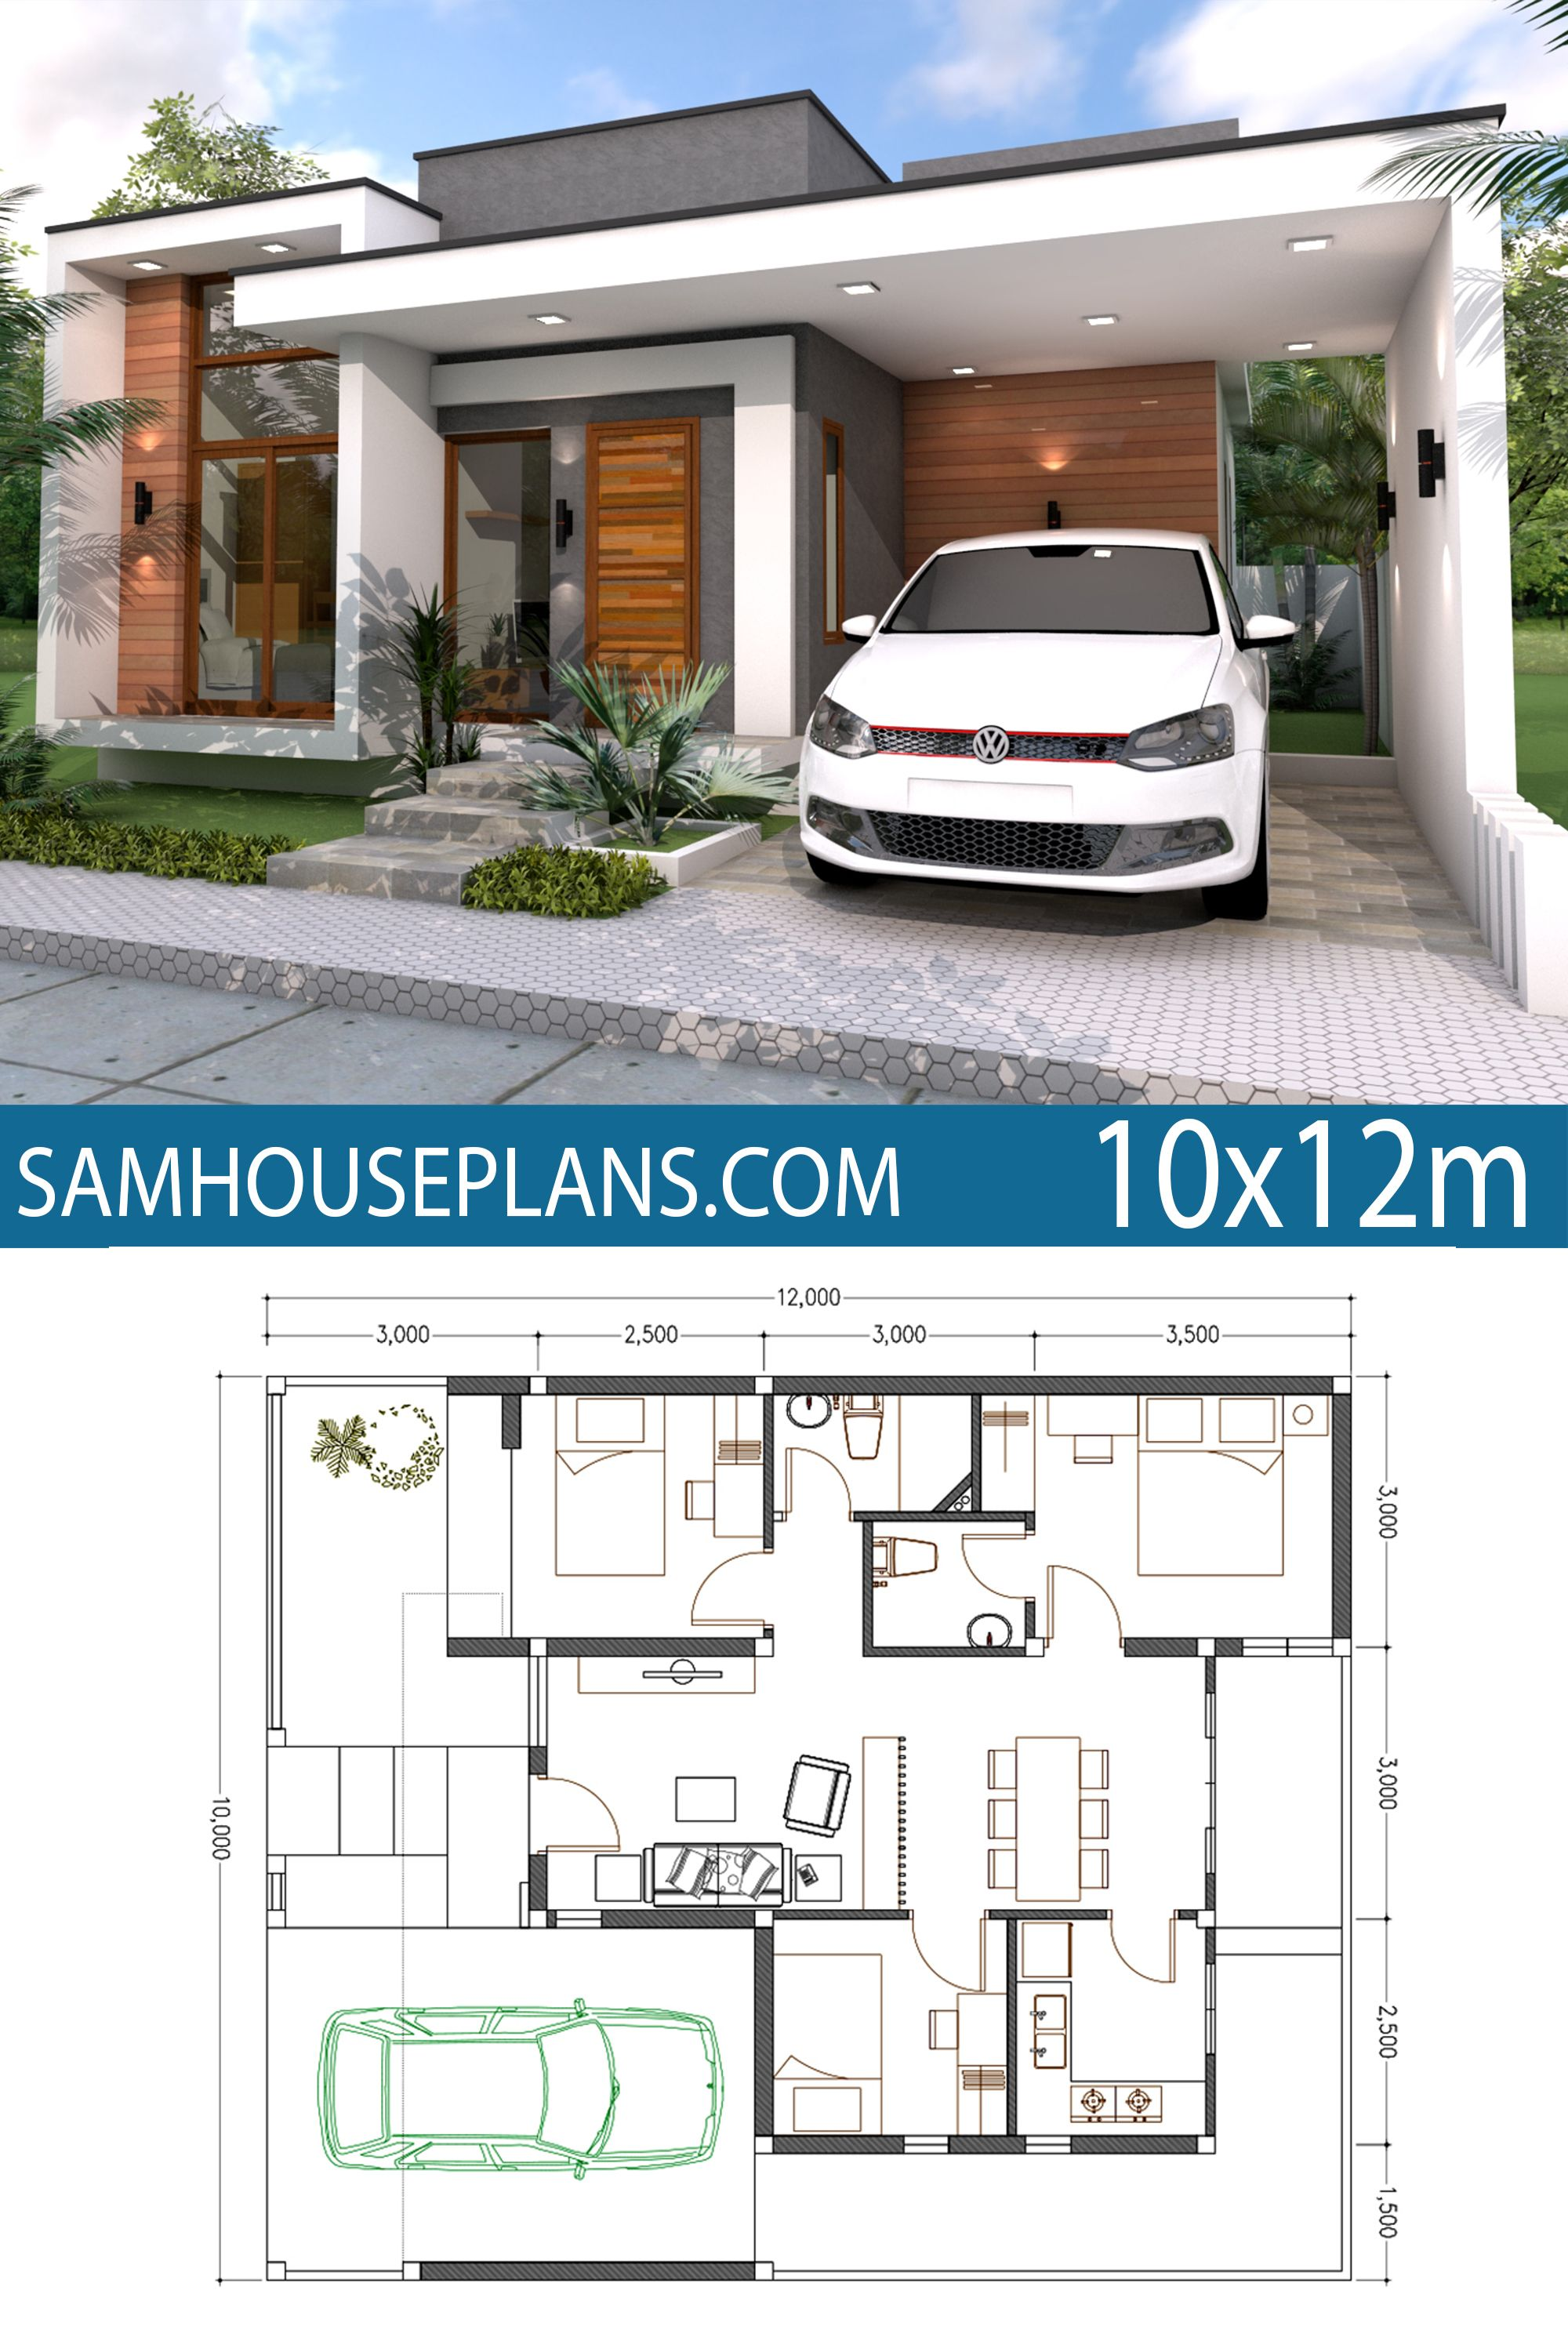 Home Plan 10x12m 3 Bedrooms House Plans Free Downloads Contemporary House Plans Minimalist House Design House Layout Plans